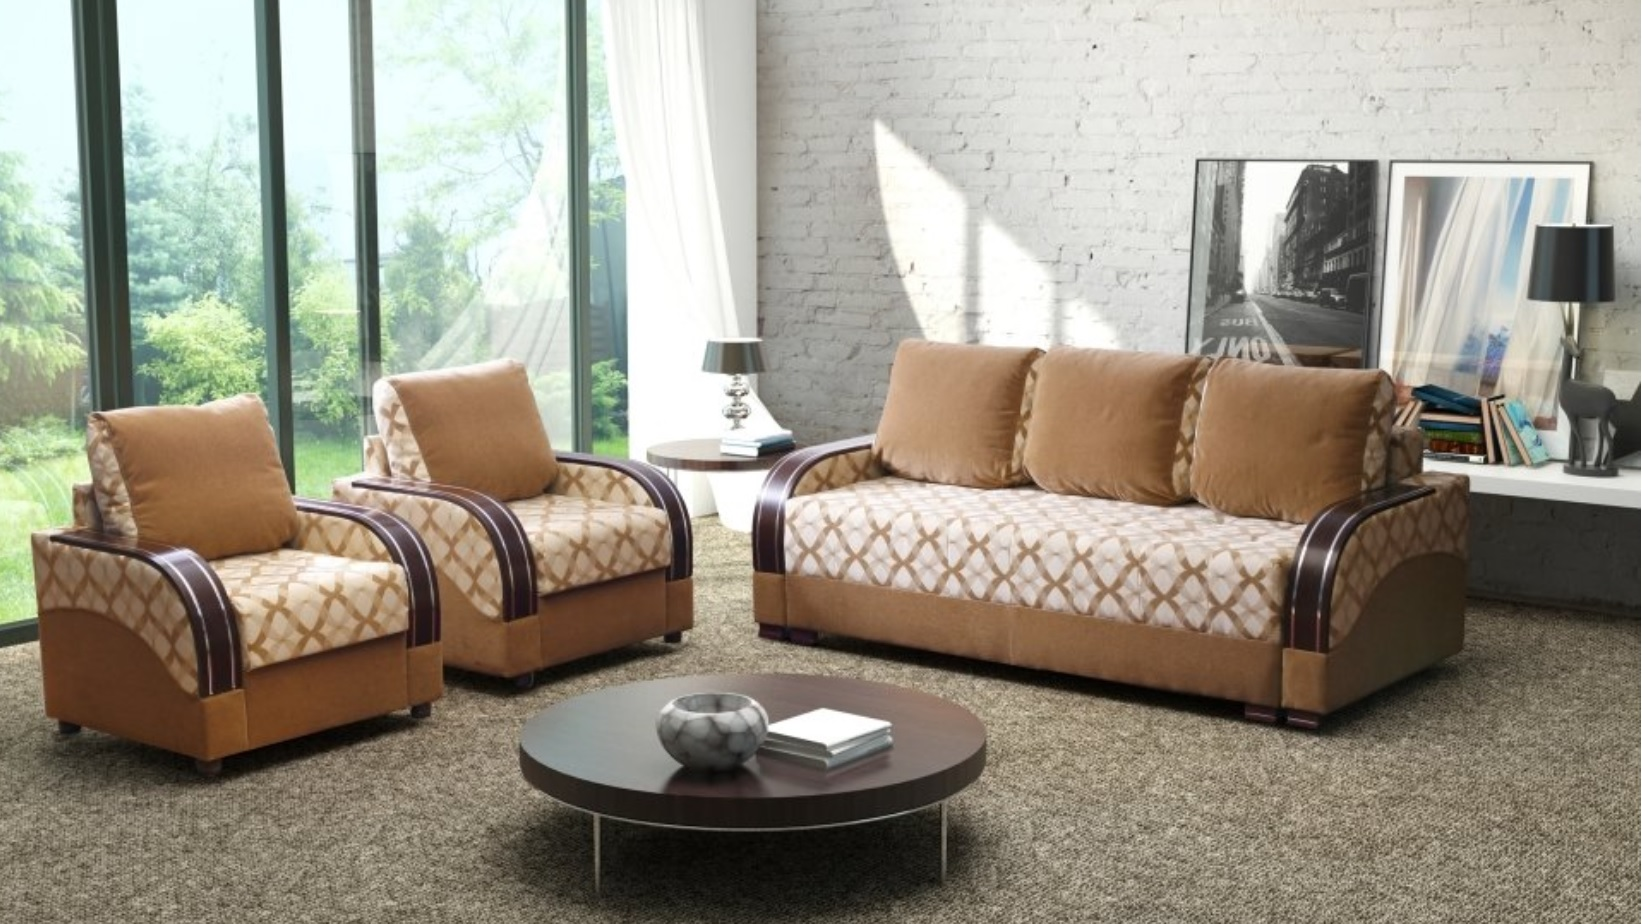 couch ecksofa wohnlandschaft schlafsofa federkern stoffsofa textil gro es sofa ebay. Black Bedroom Furniture Sets. Home Design Ideas